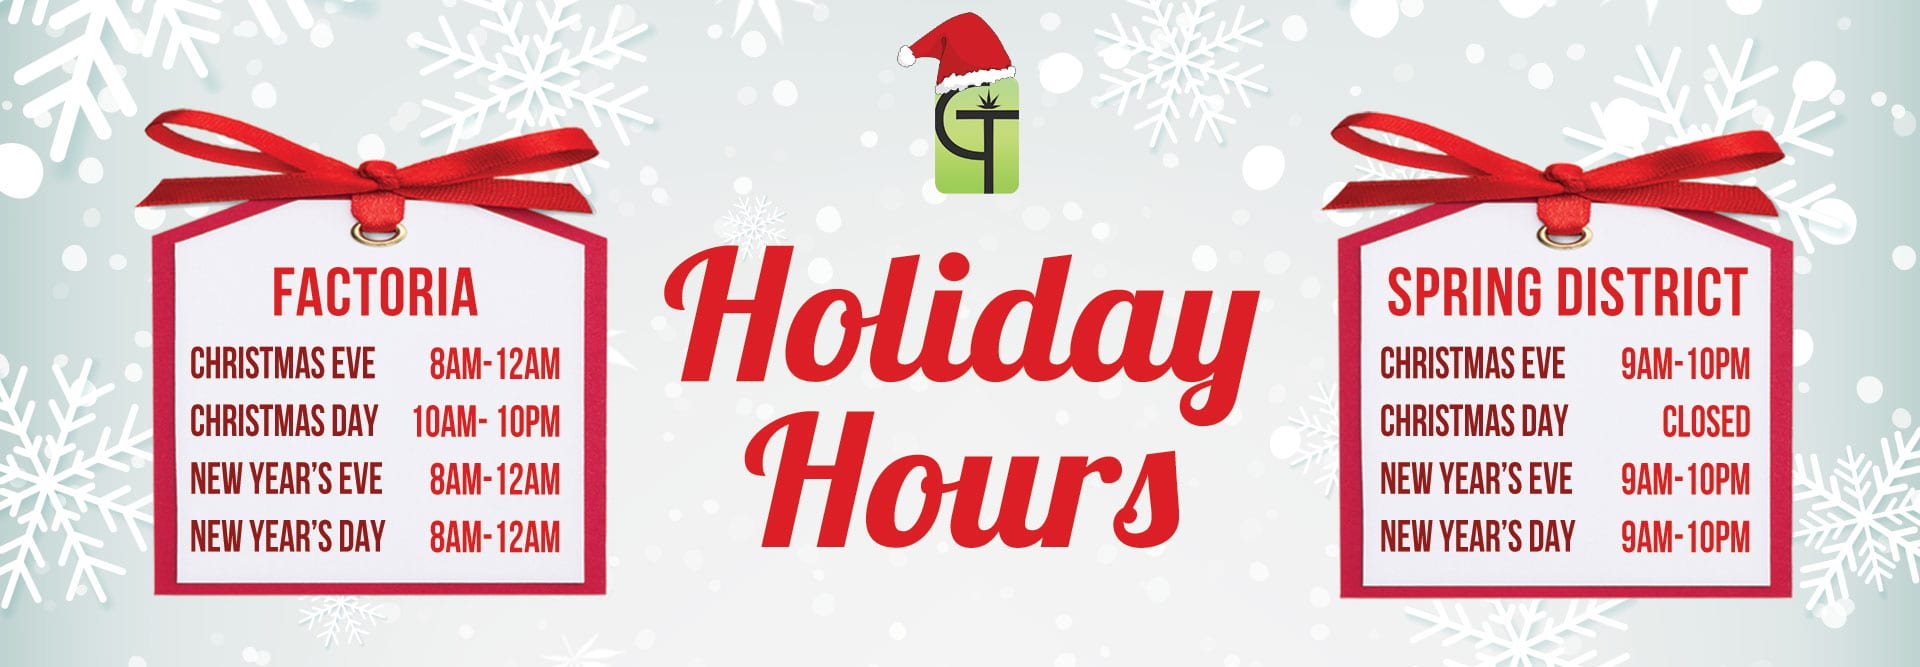 Green-theory-holiday-hours-2017